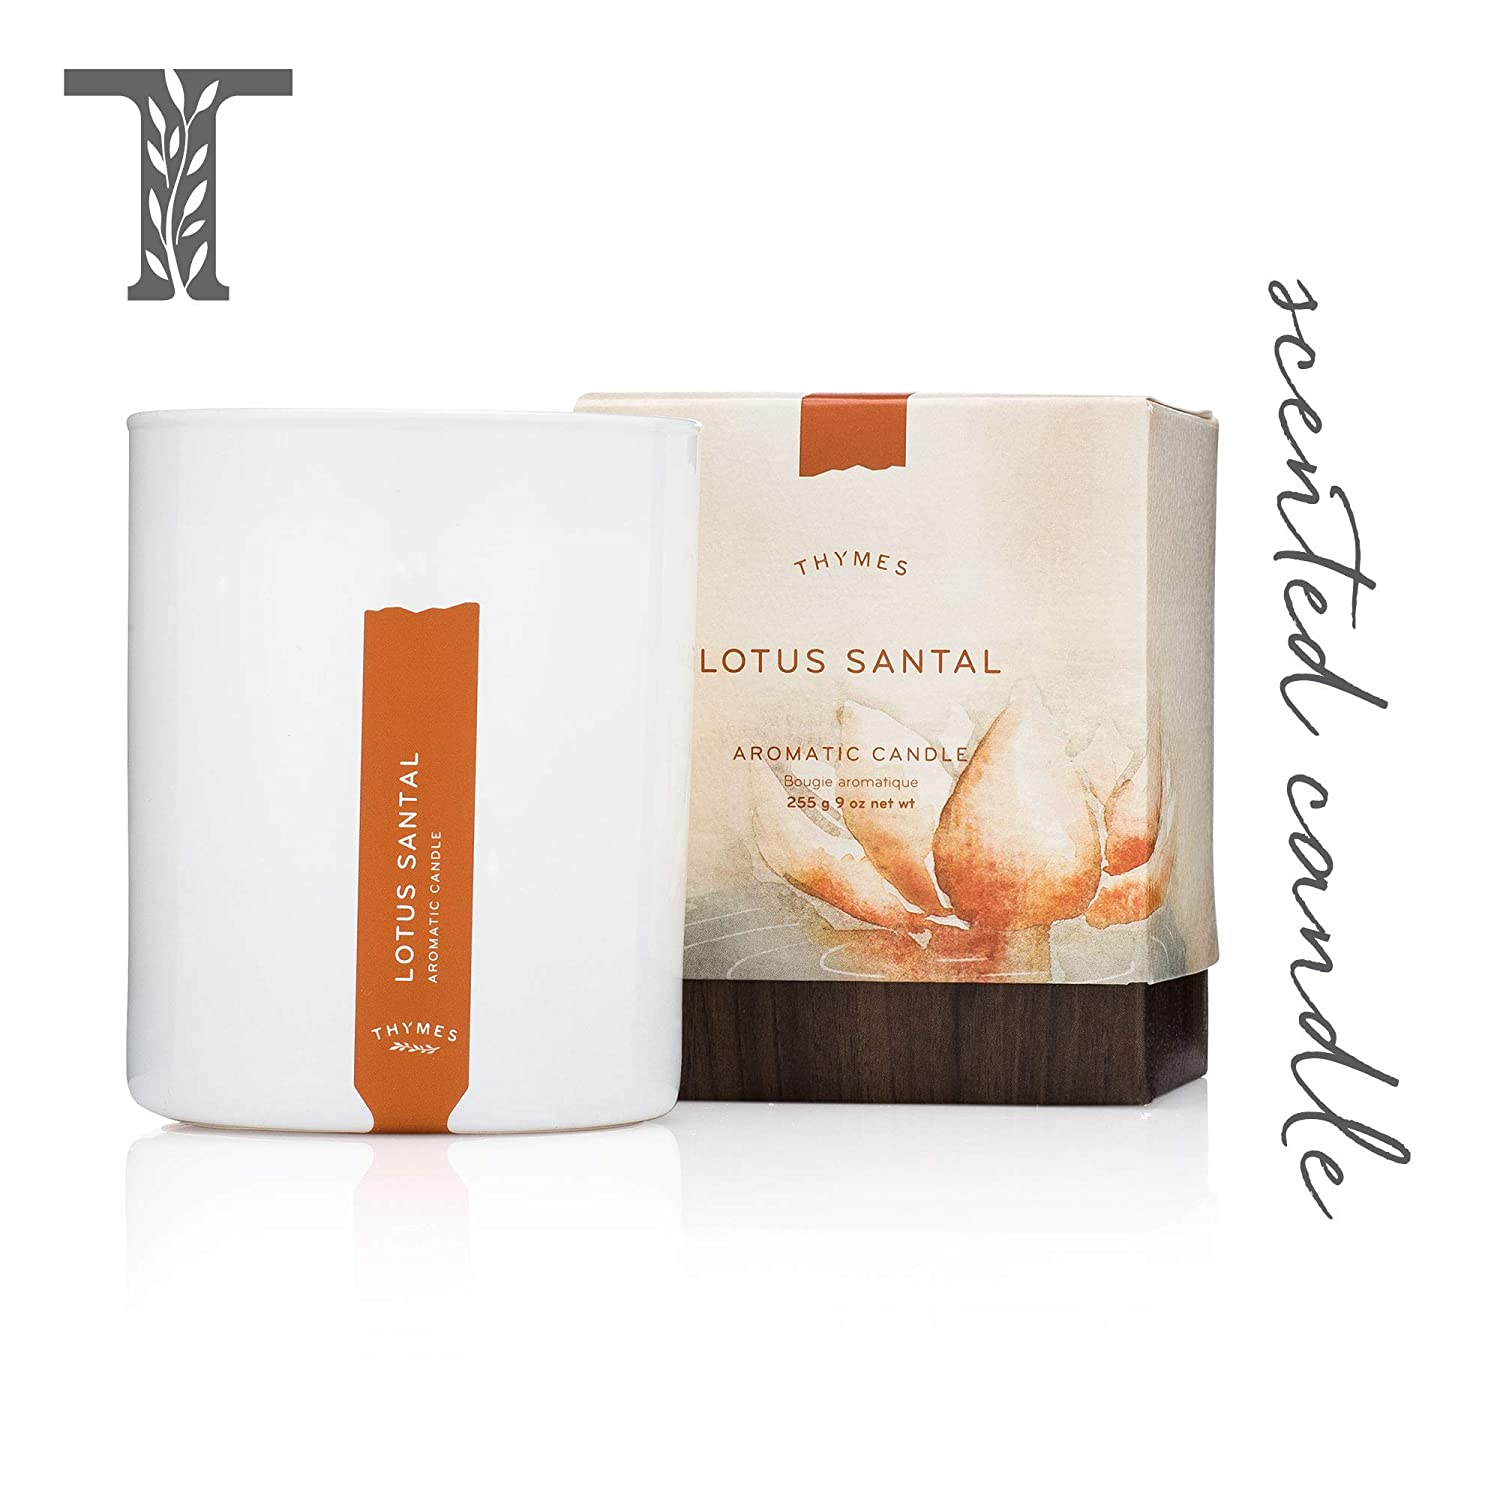 Thymes Eucalyptus Aromatic Scented Candle - Long Lasting Scent with Gift Box - 9 oz 637666041247